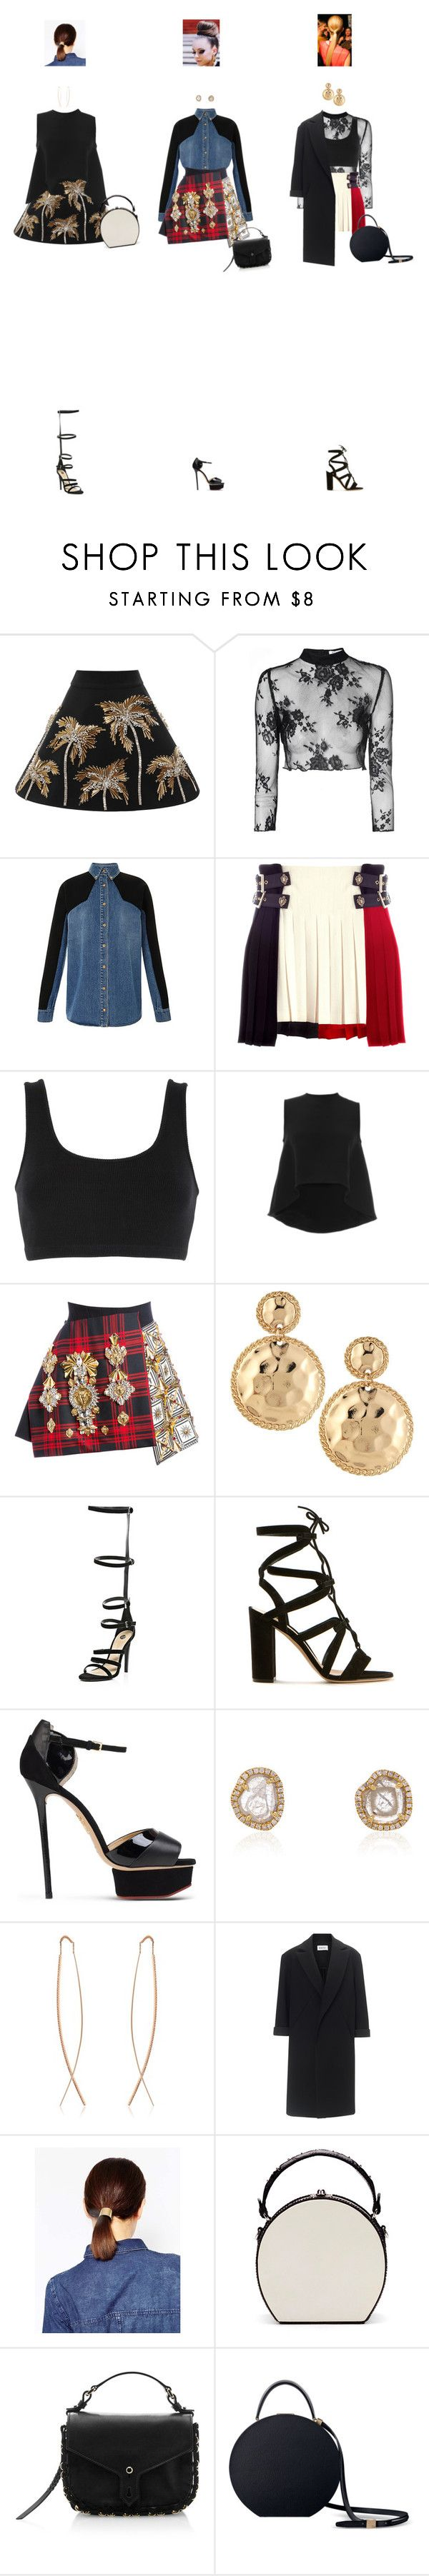 """Apr. 10, 2016"" by chocohearts08 ❤ liked on Polyvore featuring FAUSTO PUGLISI, Glamorous, adidas Originals, HUISHAN ZHANG, Kenneth Jay Lane, River Island, Gianvito Rossi, Charlotte Olympia, NSR Nina Runsdorf and Diane Kordas"